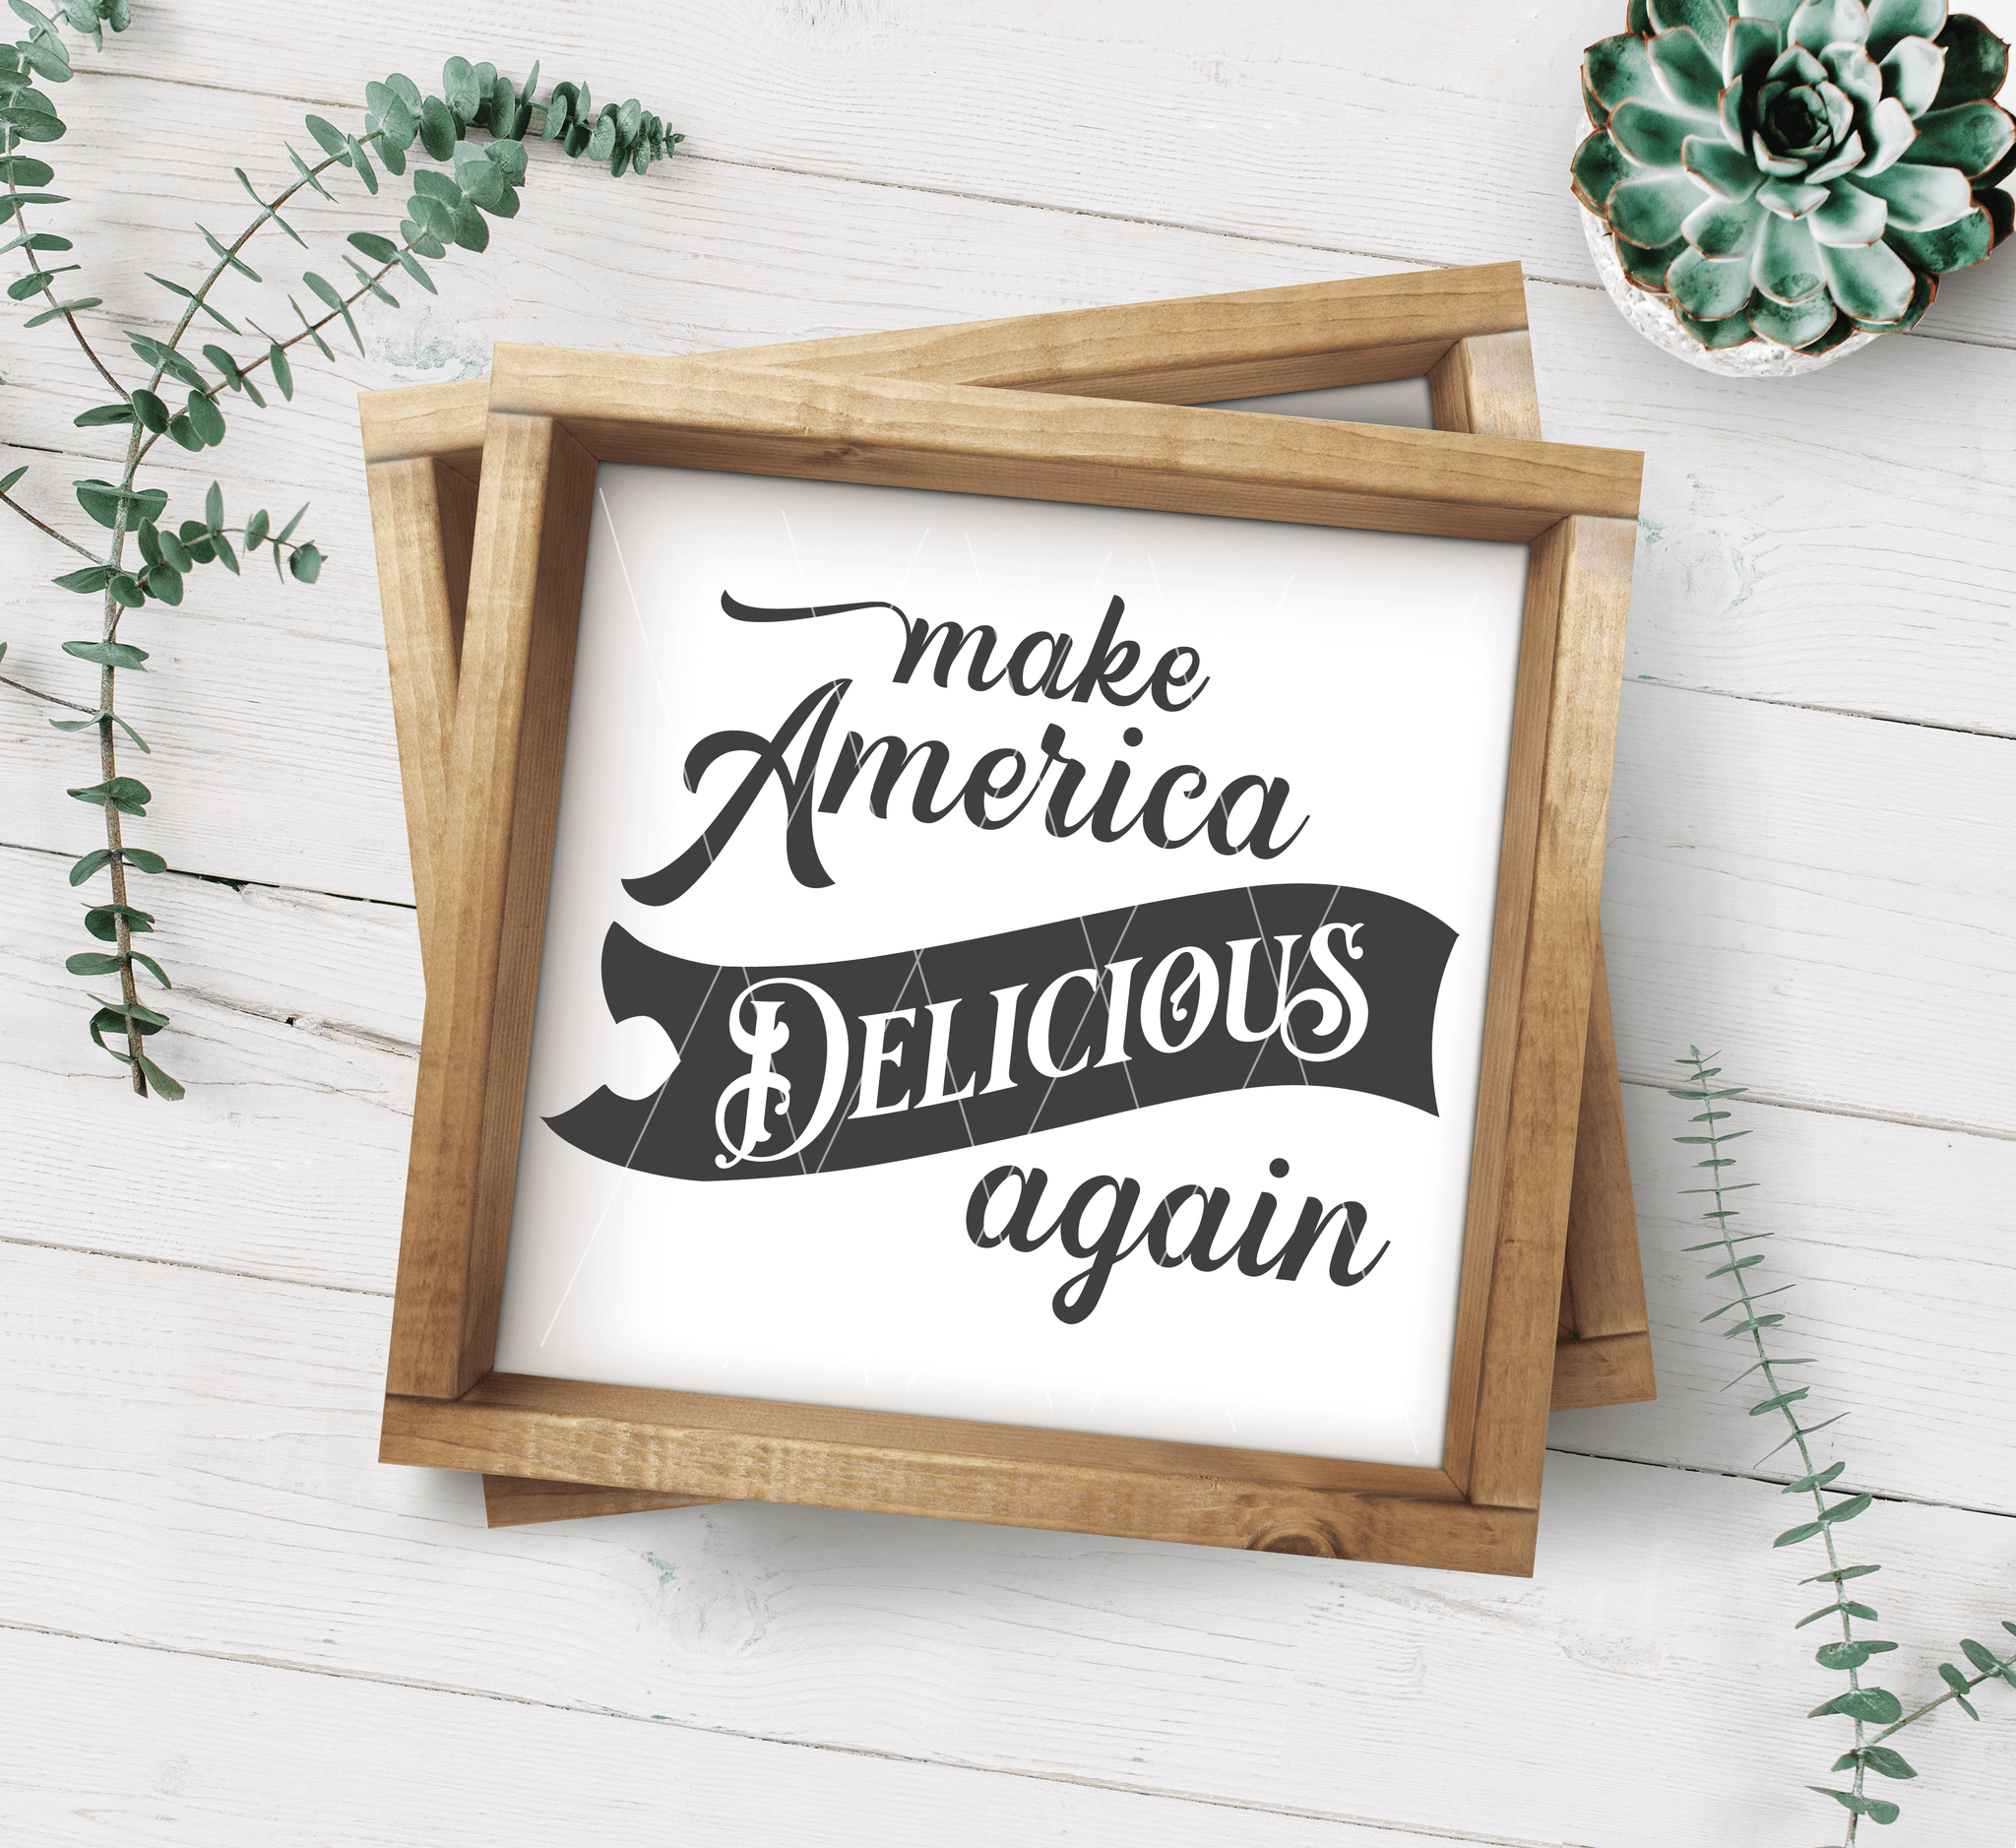 Make America Delicious Agaian SVG File - Commercial Use SVG Files